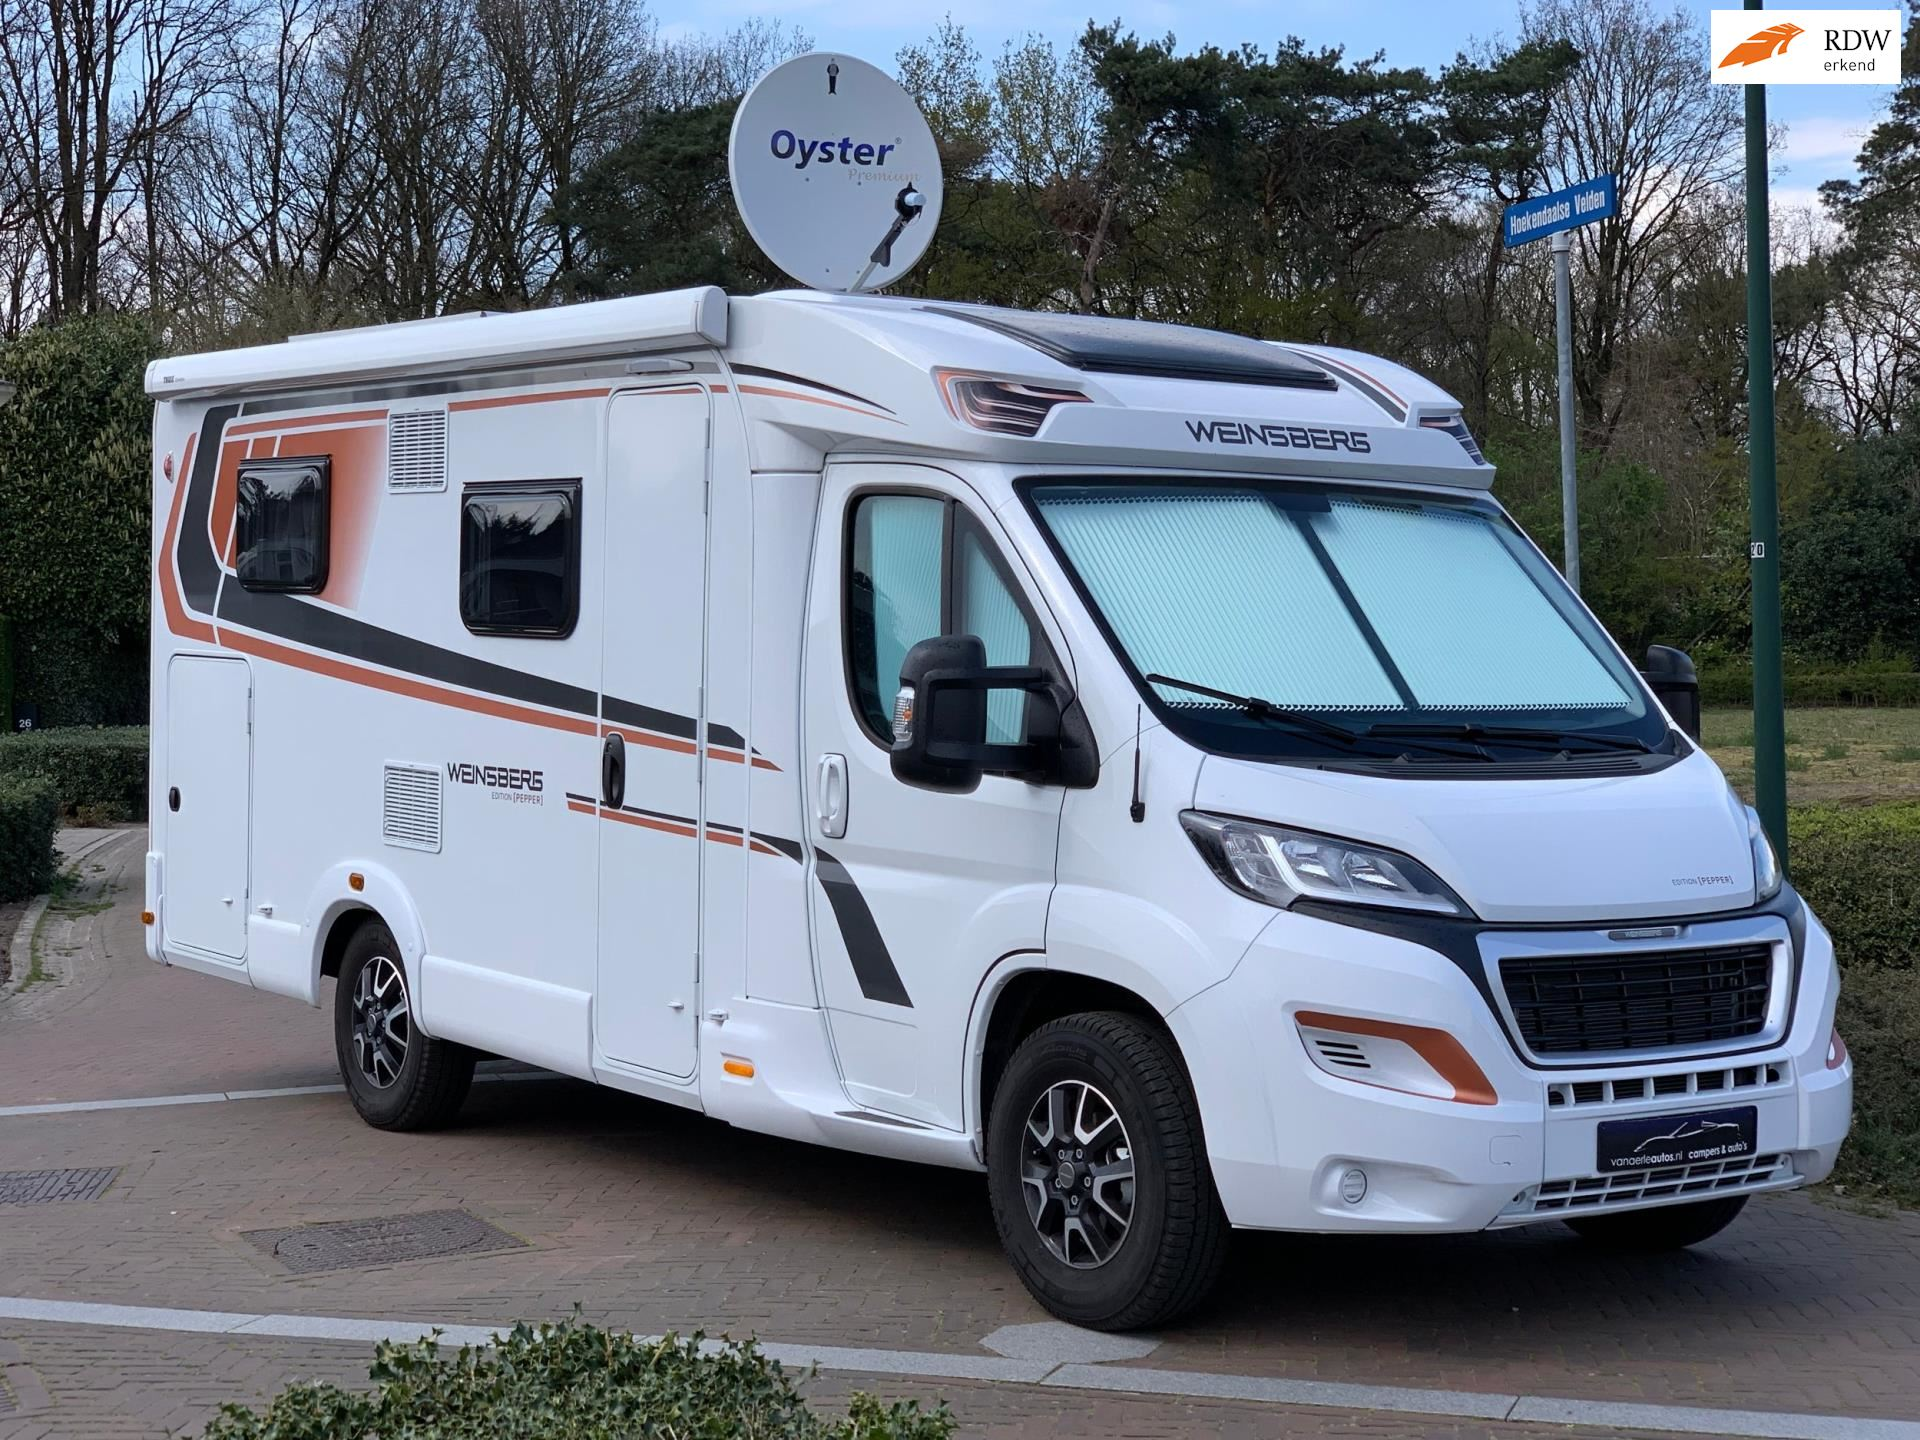 Knaus Weinsberg CaraCompact 600 MEG Pepper Edition occasion - Eric van Aerle Auto's